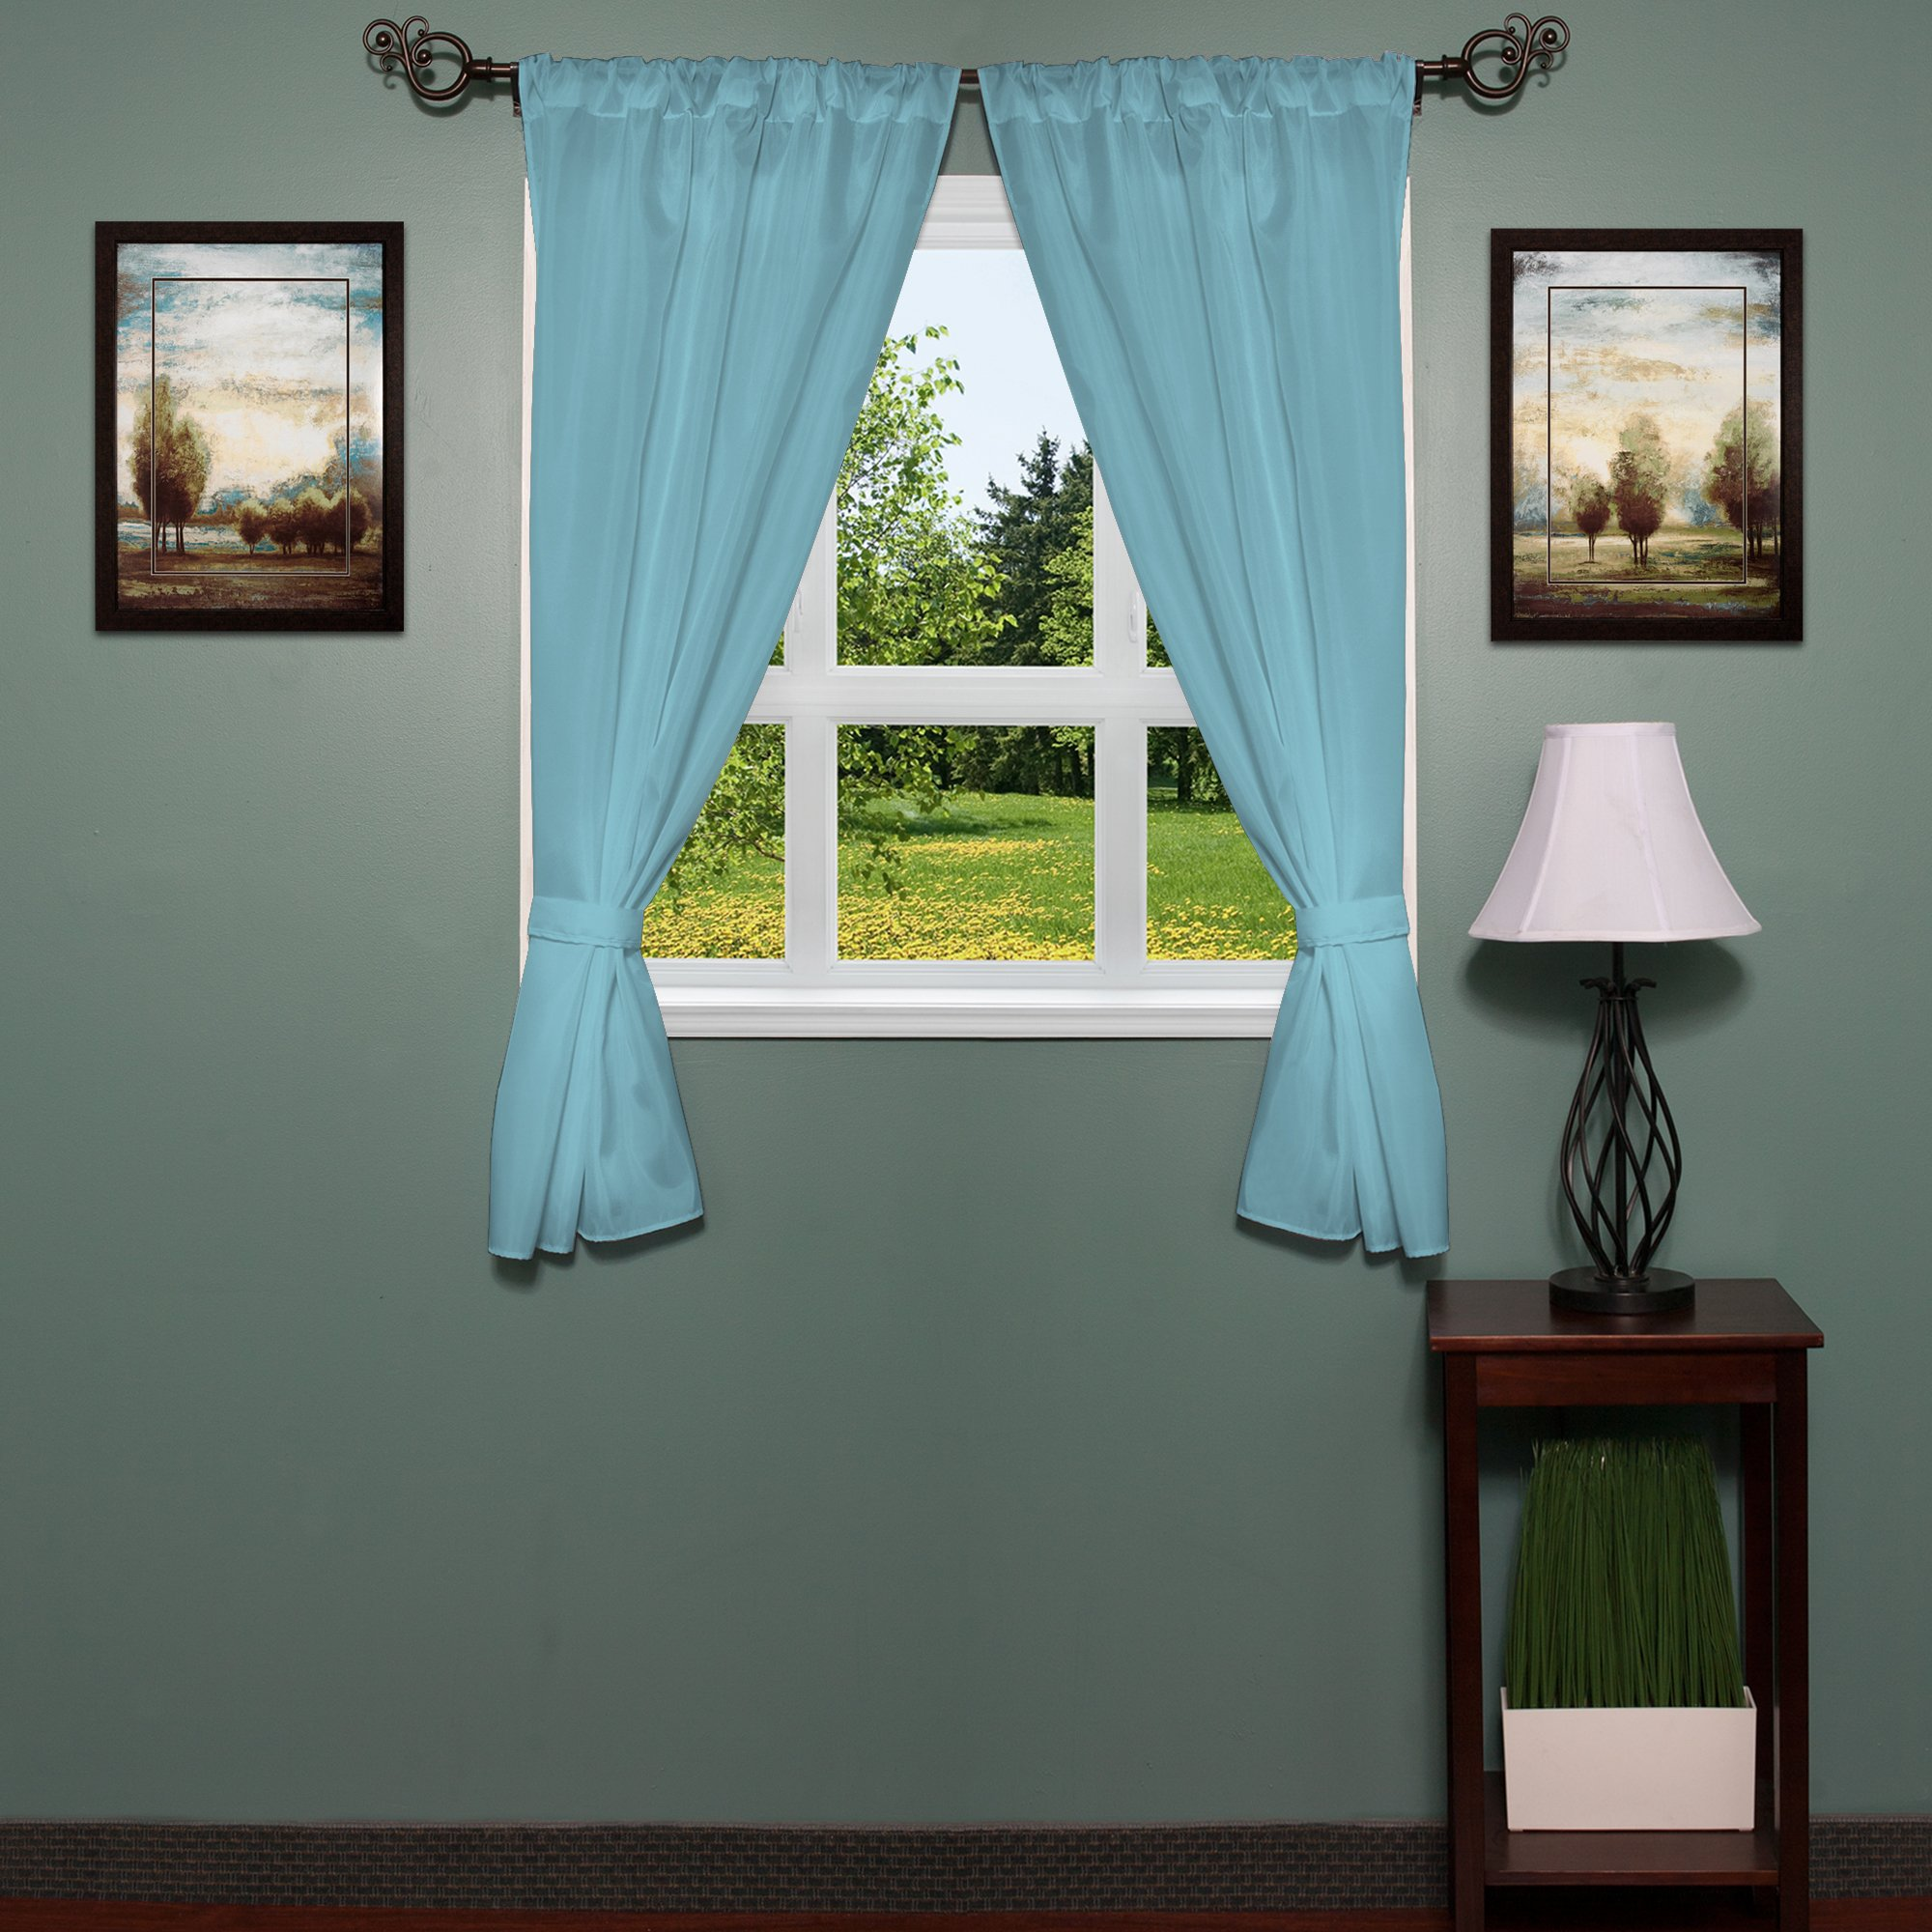 Sweet Home Collection Fabric Bathroom Window Curtain Hotel Quality Set of Two Durable 36'' x 54'' Panels with Pair of Tiebacks, Spa Blue